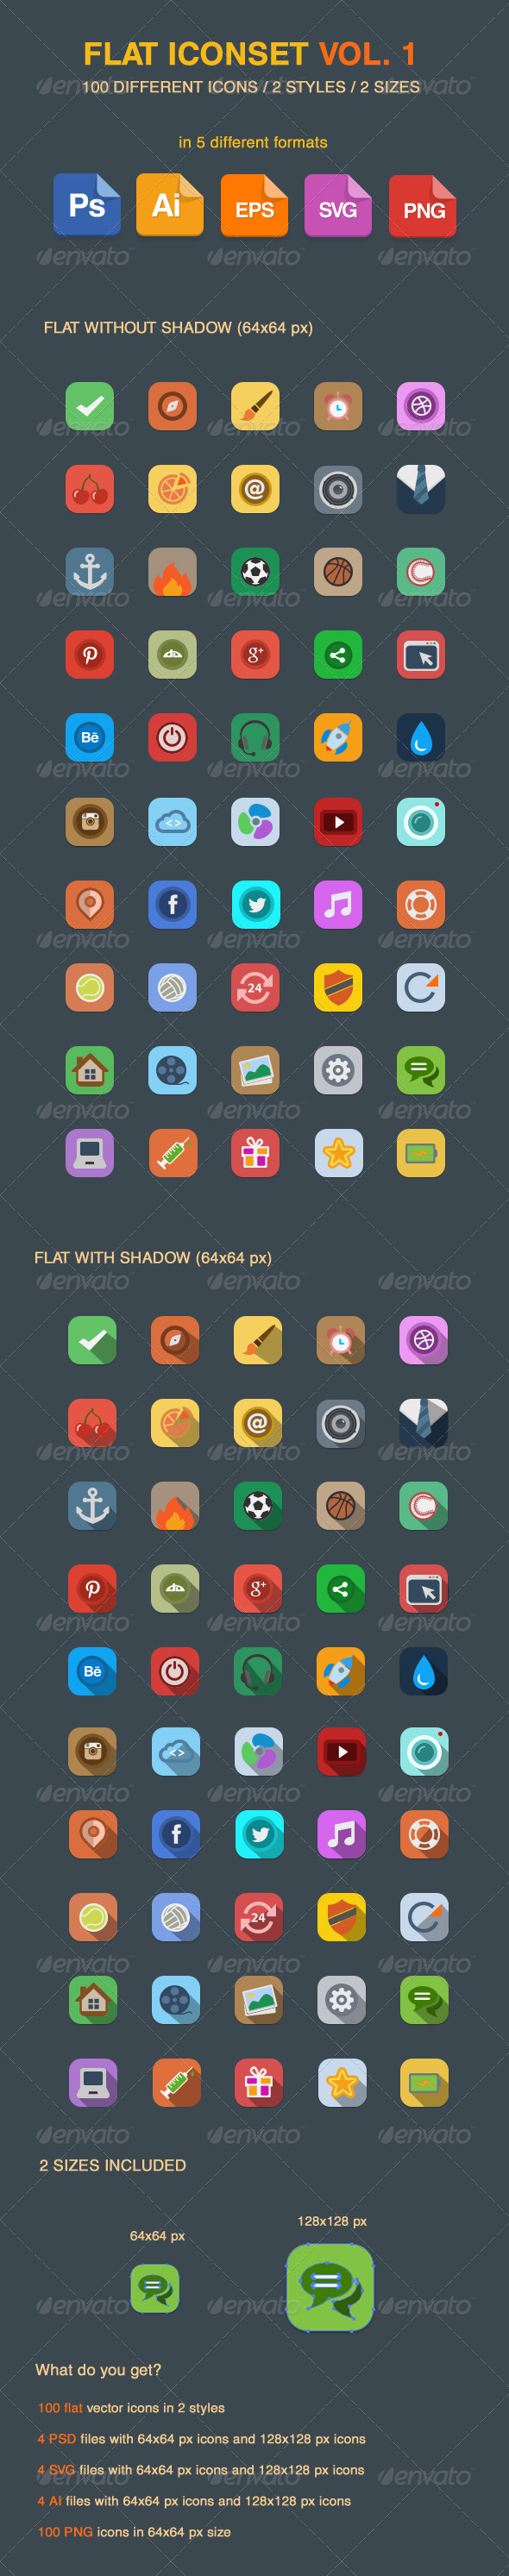 GraphicRiver Flat Vector Iconset Vol 1 5406806